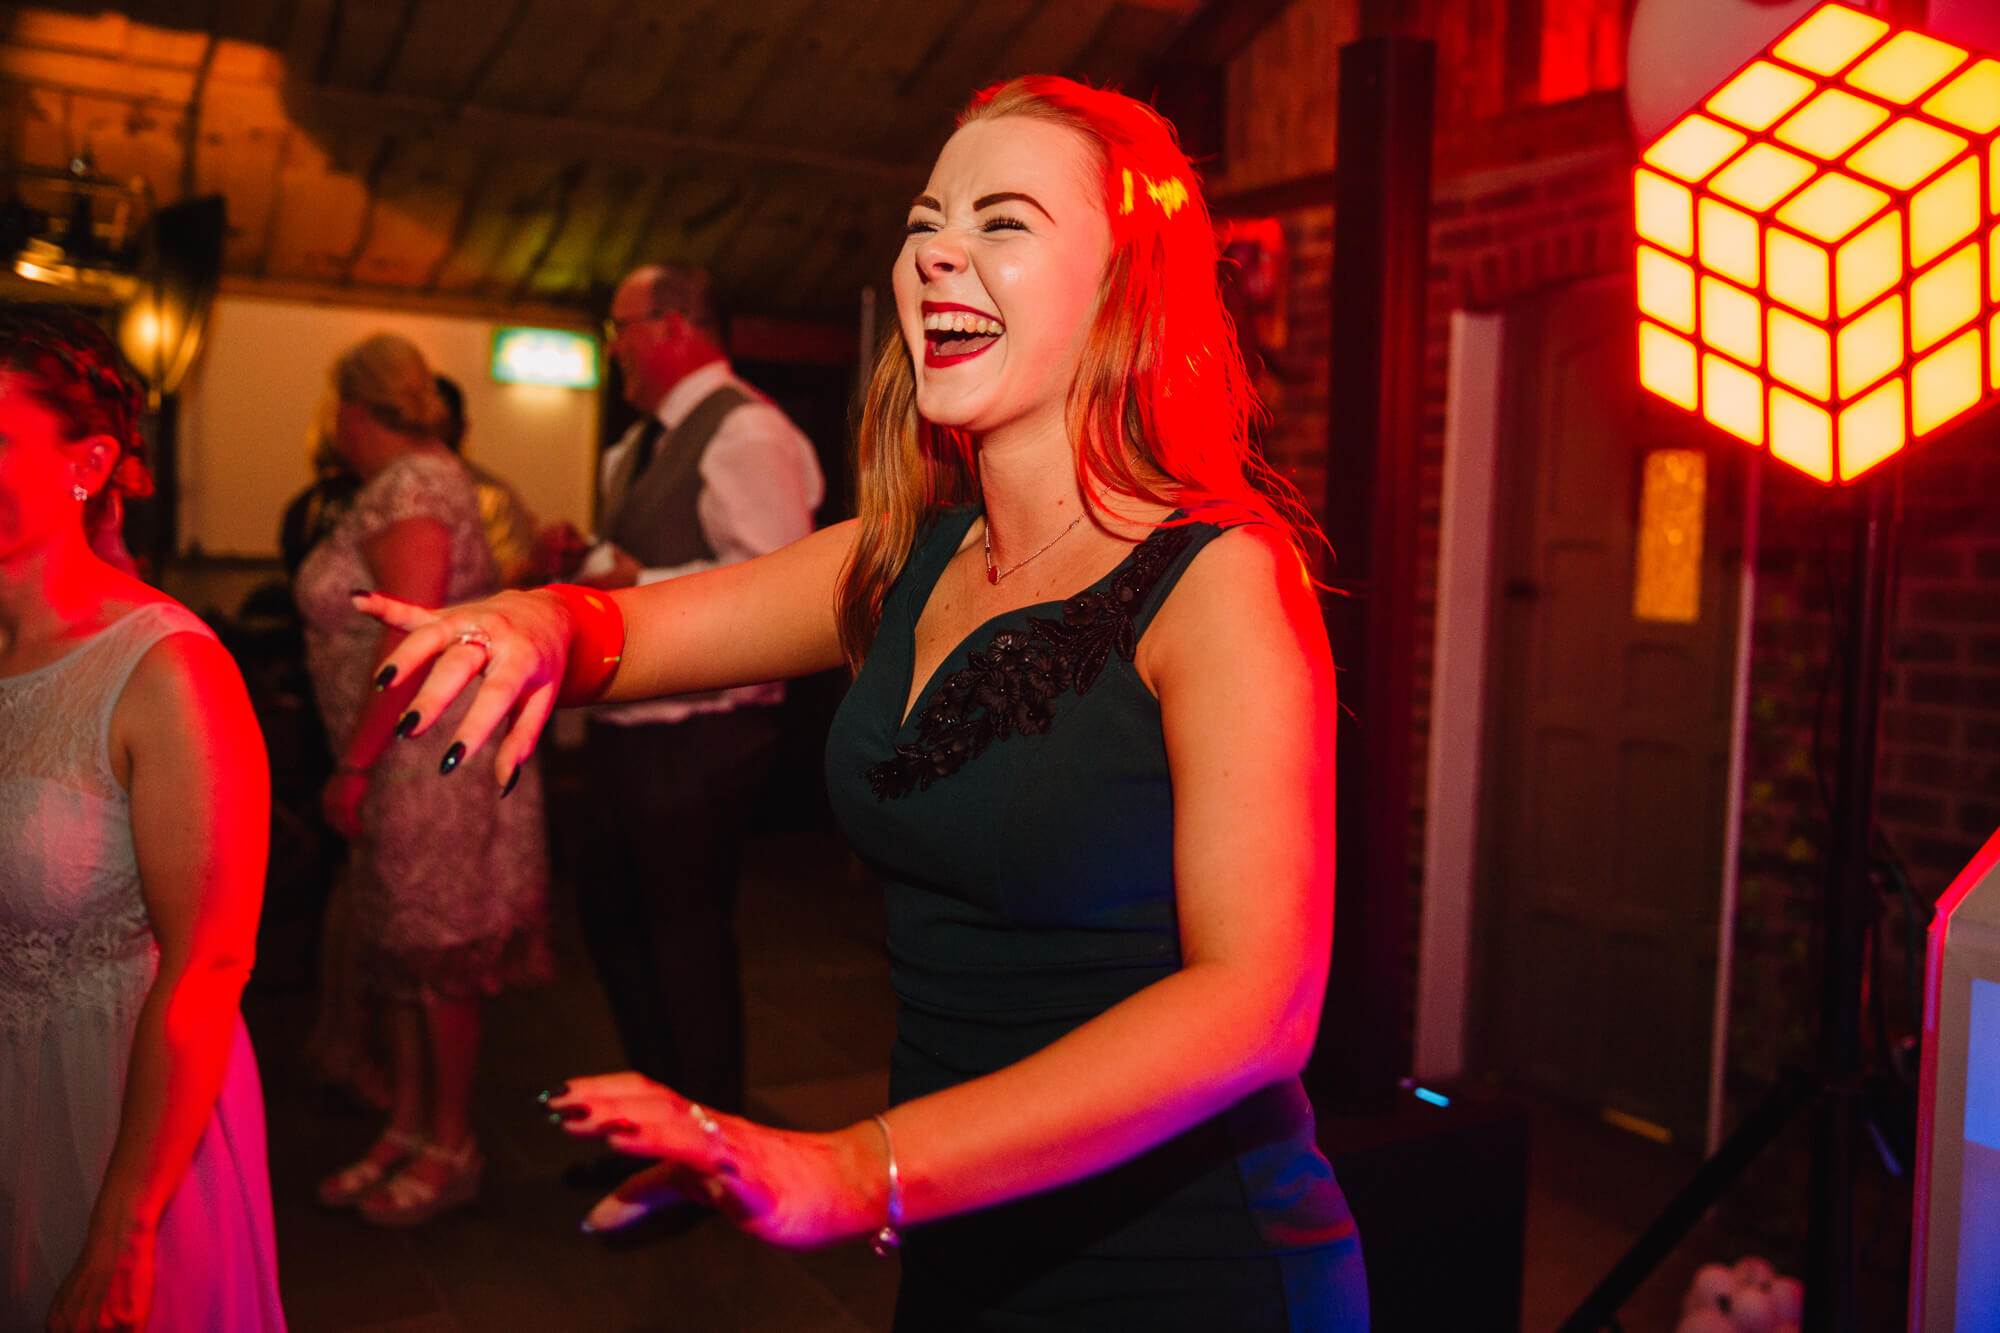 maid of honour dancing and laughing at end of evening in a high contrast colourful photograph